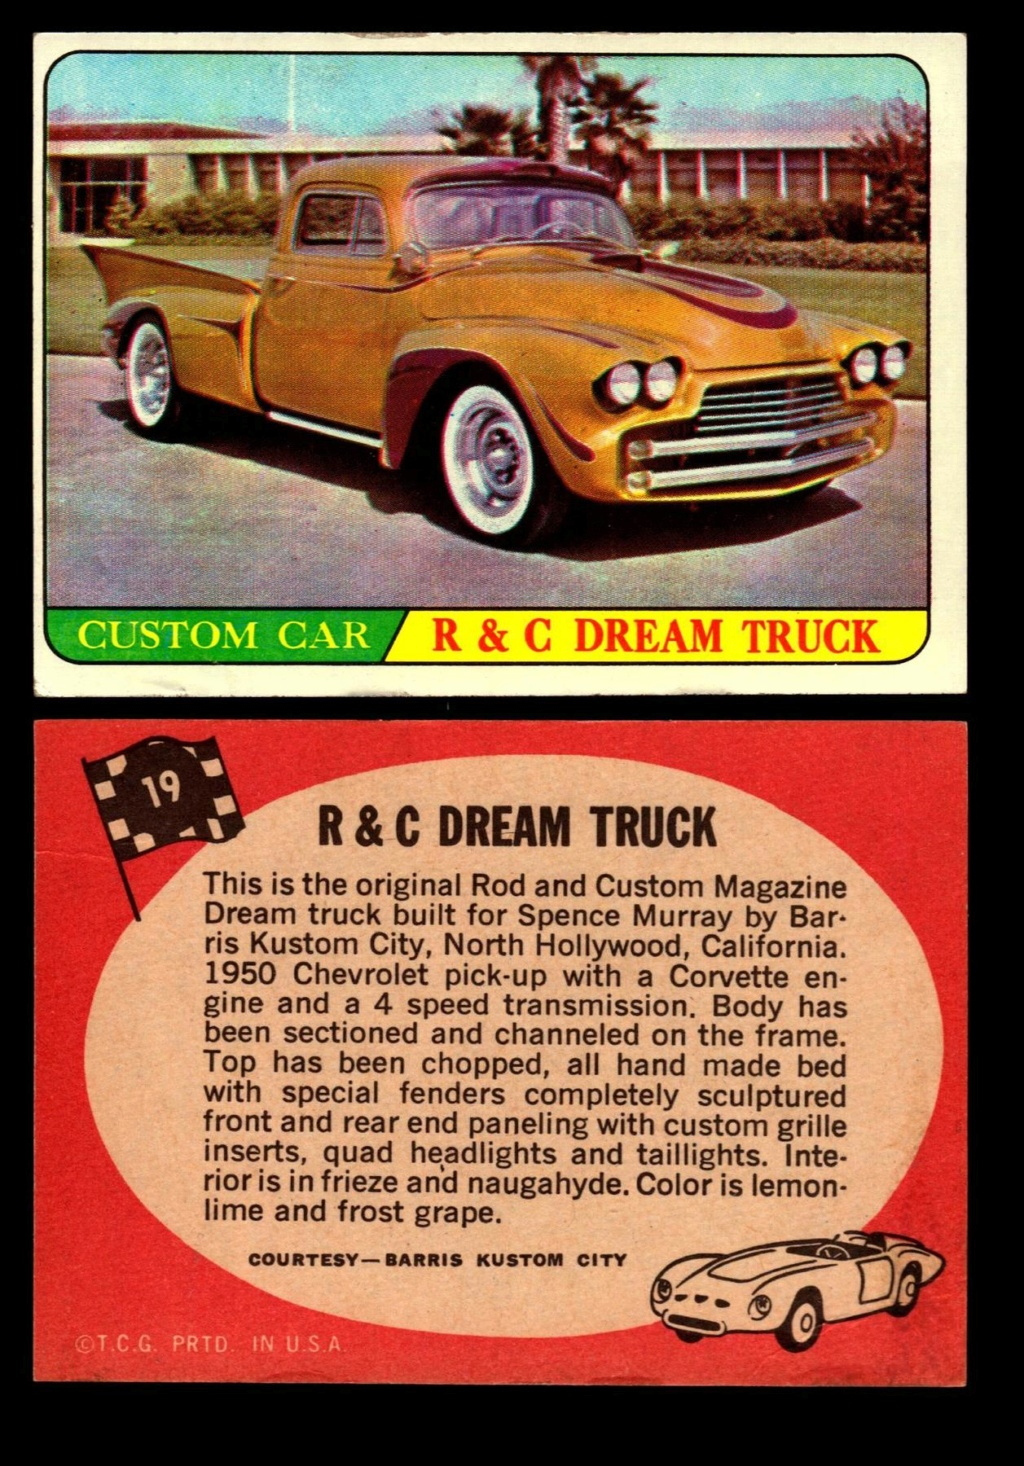 Hot Rods Topps - Vintage Trading Cards 1968 - Custom car - Dragster - Racer - Dream car - Barris Kustom City - Ed Roth Darrill Starbird, Gene Winfield, Bill Cuchenberry 19_a4410